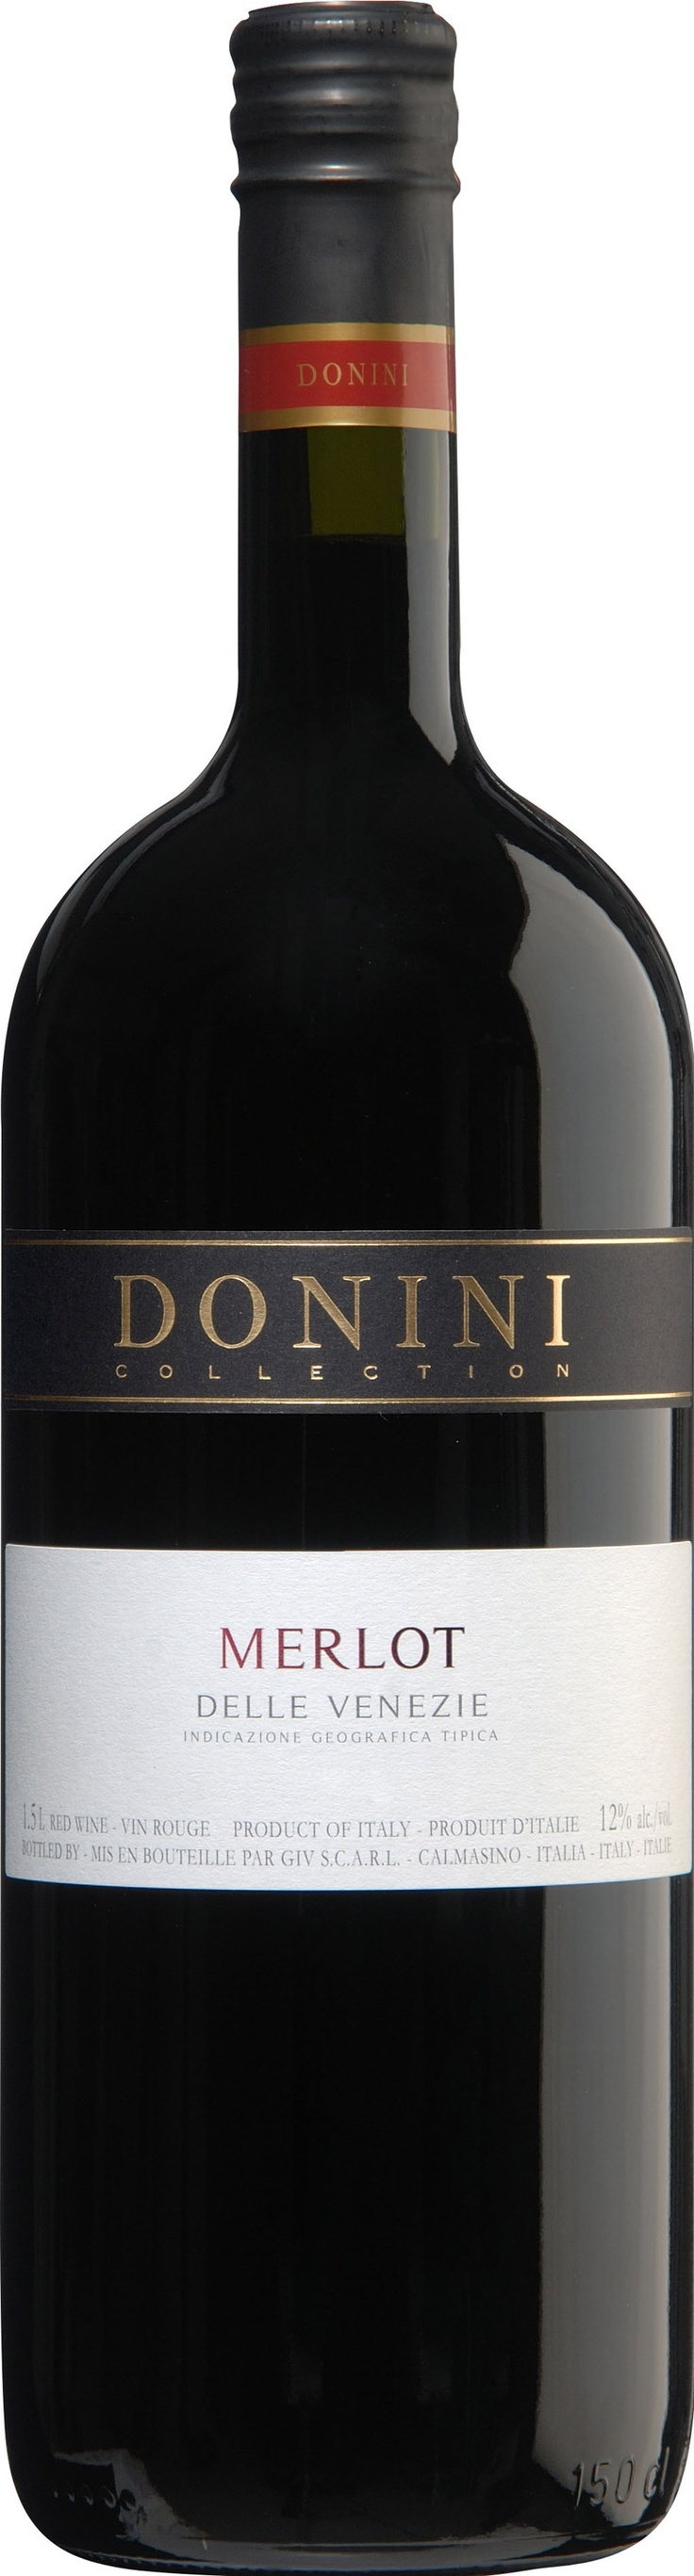 Donini Merlot Delle Venezie Our wine by the glass!